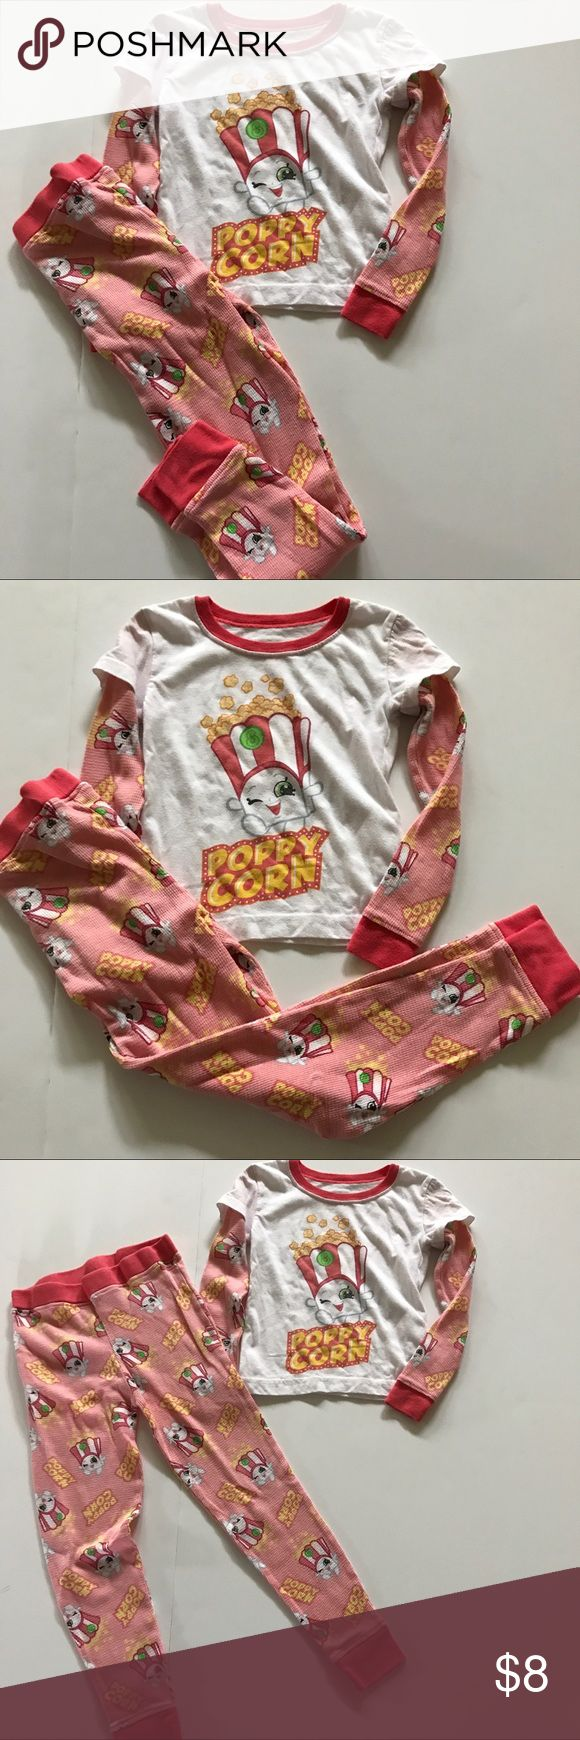 Moose Shopkins poppy corn pjs Moose Shopkins poppy corn pjs. Top is white with pink/red waffle type sleeves with popcorn on them. There is a small stain on front as shown in pic. Pants are pink/red with poppy corn on them. Show wash wear Moose Pajamas Pajama Sets